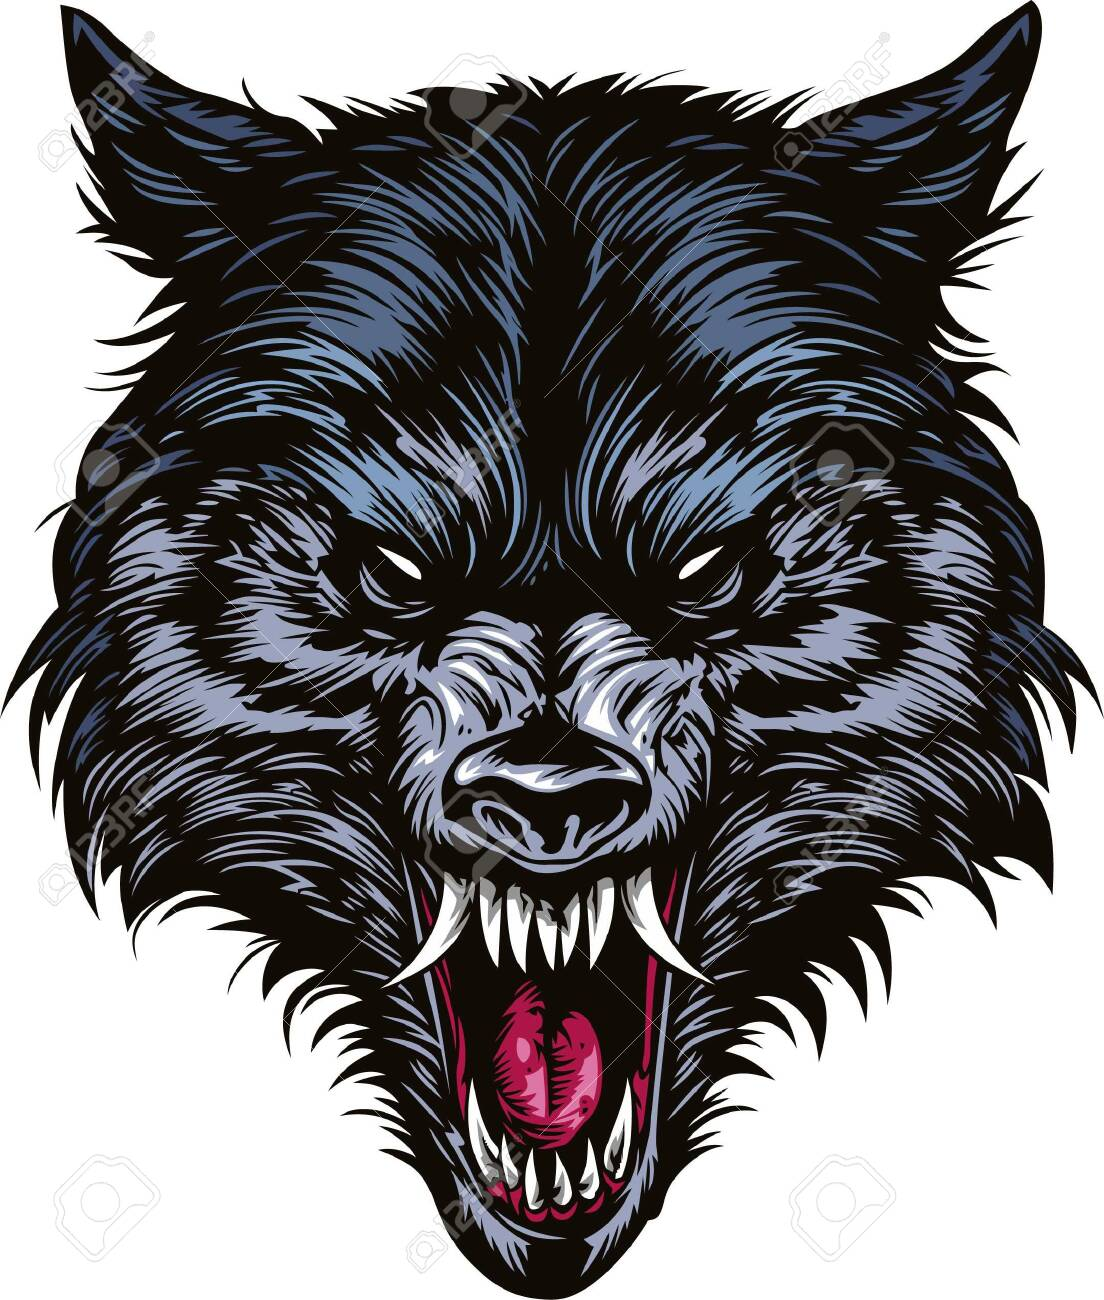 Angry Wolf Head For Tshirt Design Tshirt Design Element Angry Royalty Free Cliparts Vectors And Stock Illustration Image 149082296